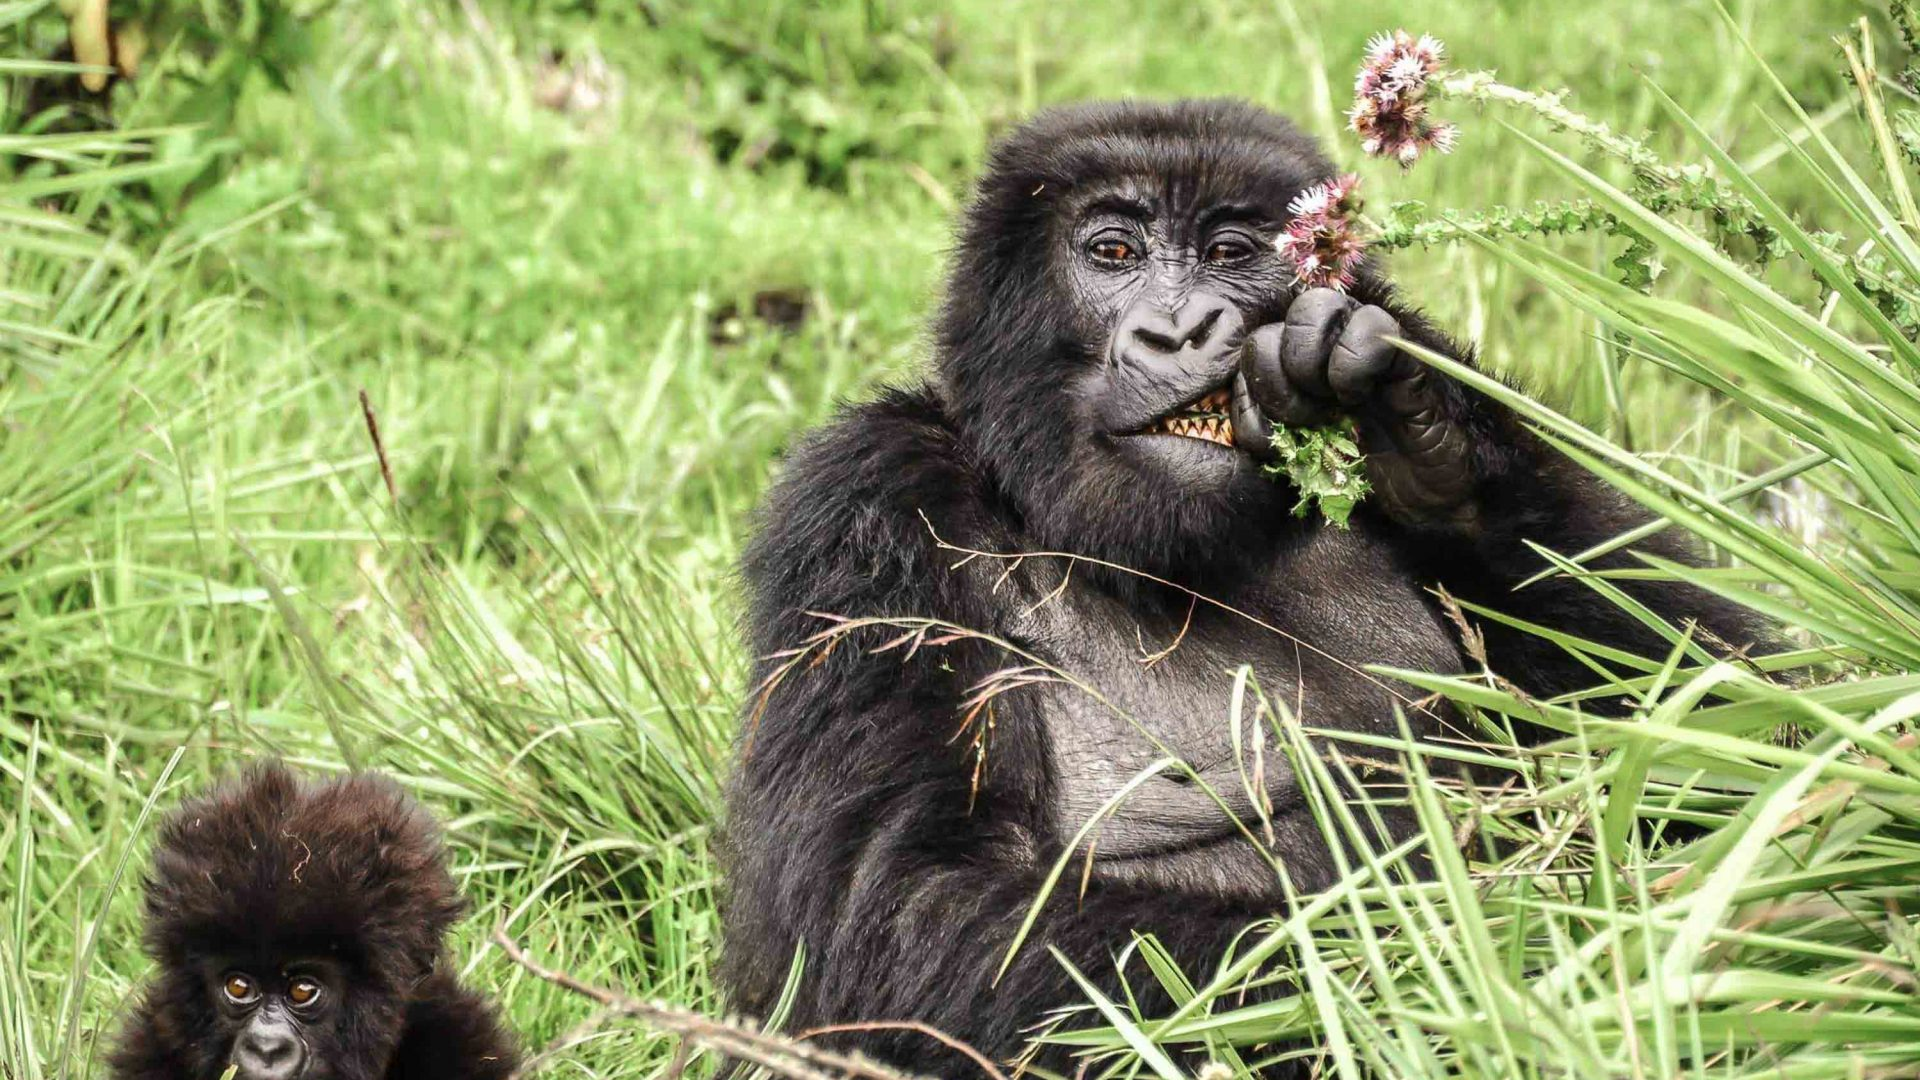 Mountain gorillas eating thistles in Rwanda.